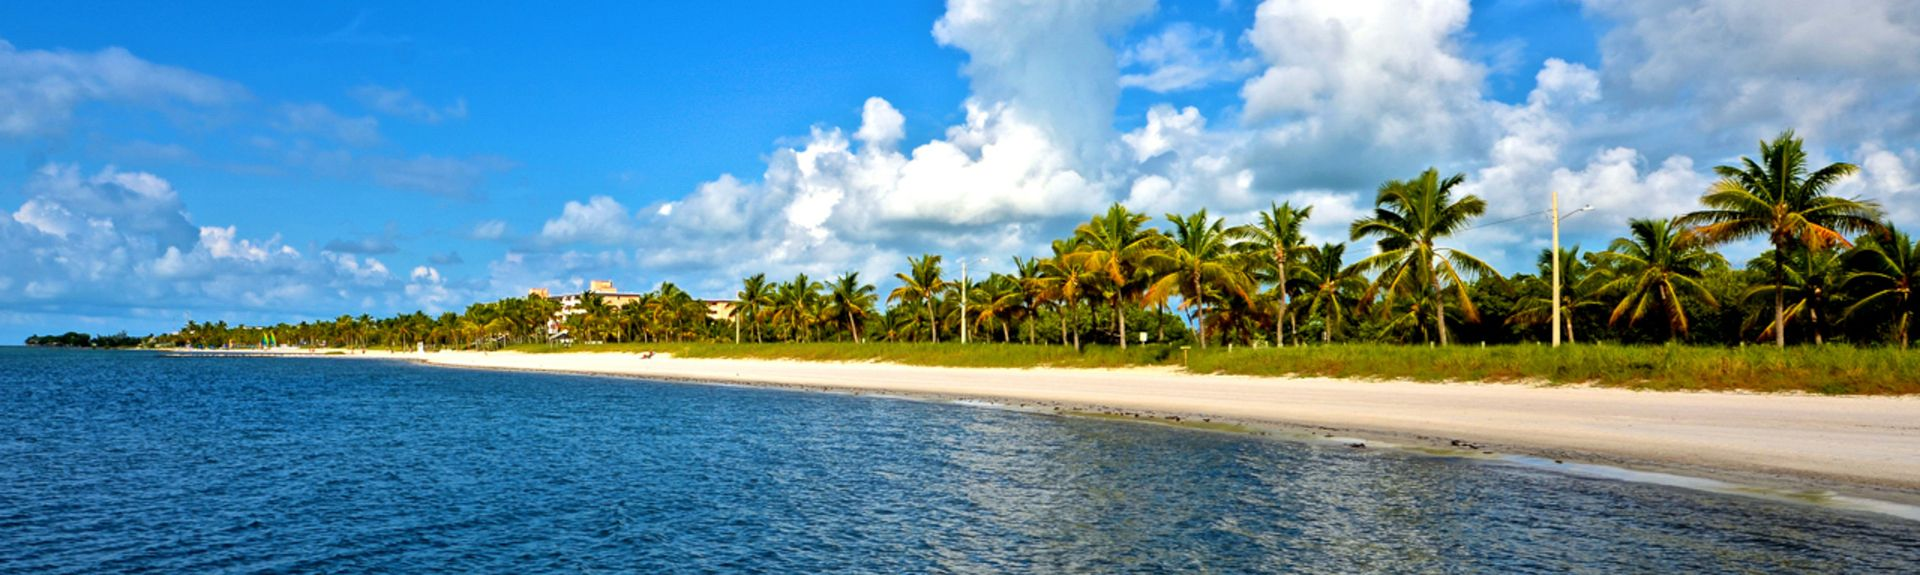 Fort Zachary Taylor Historic State Park, Key West, Florida, United States of America